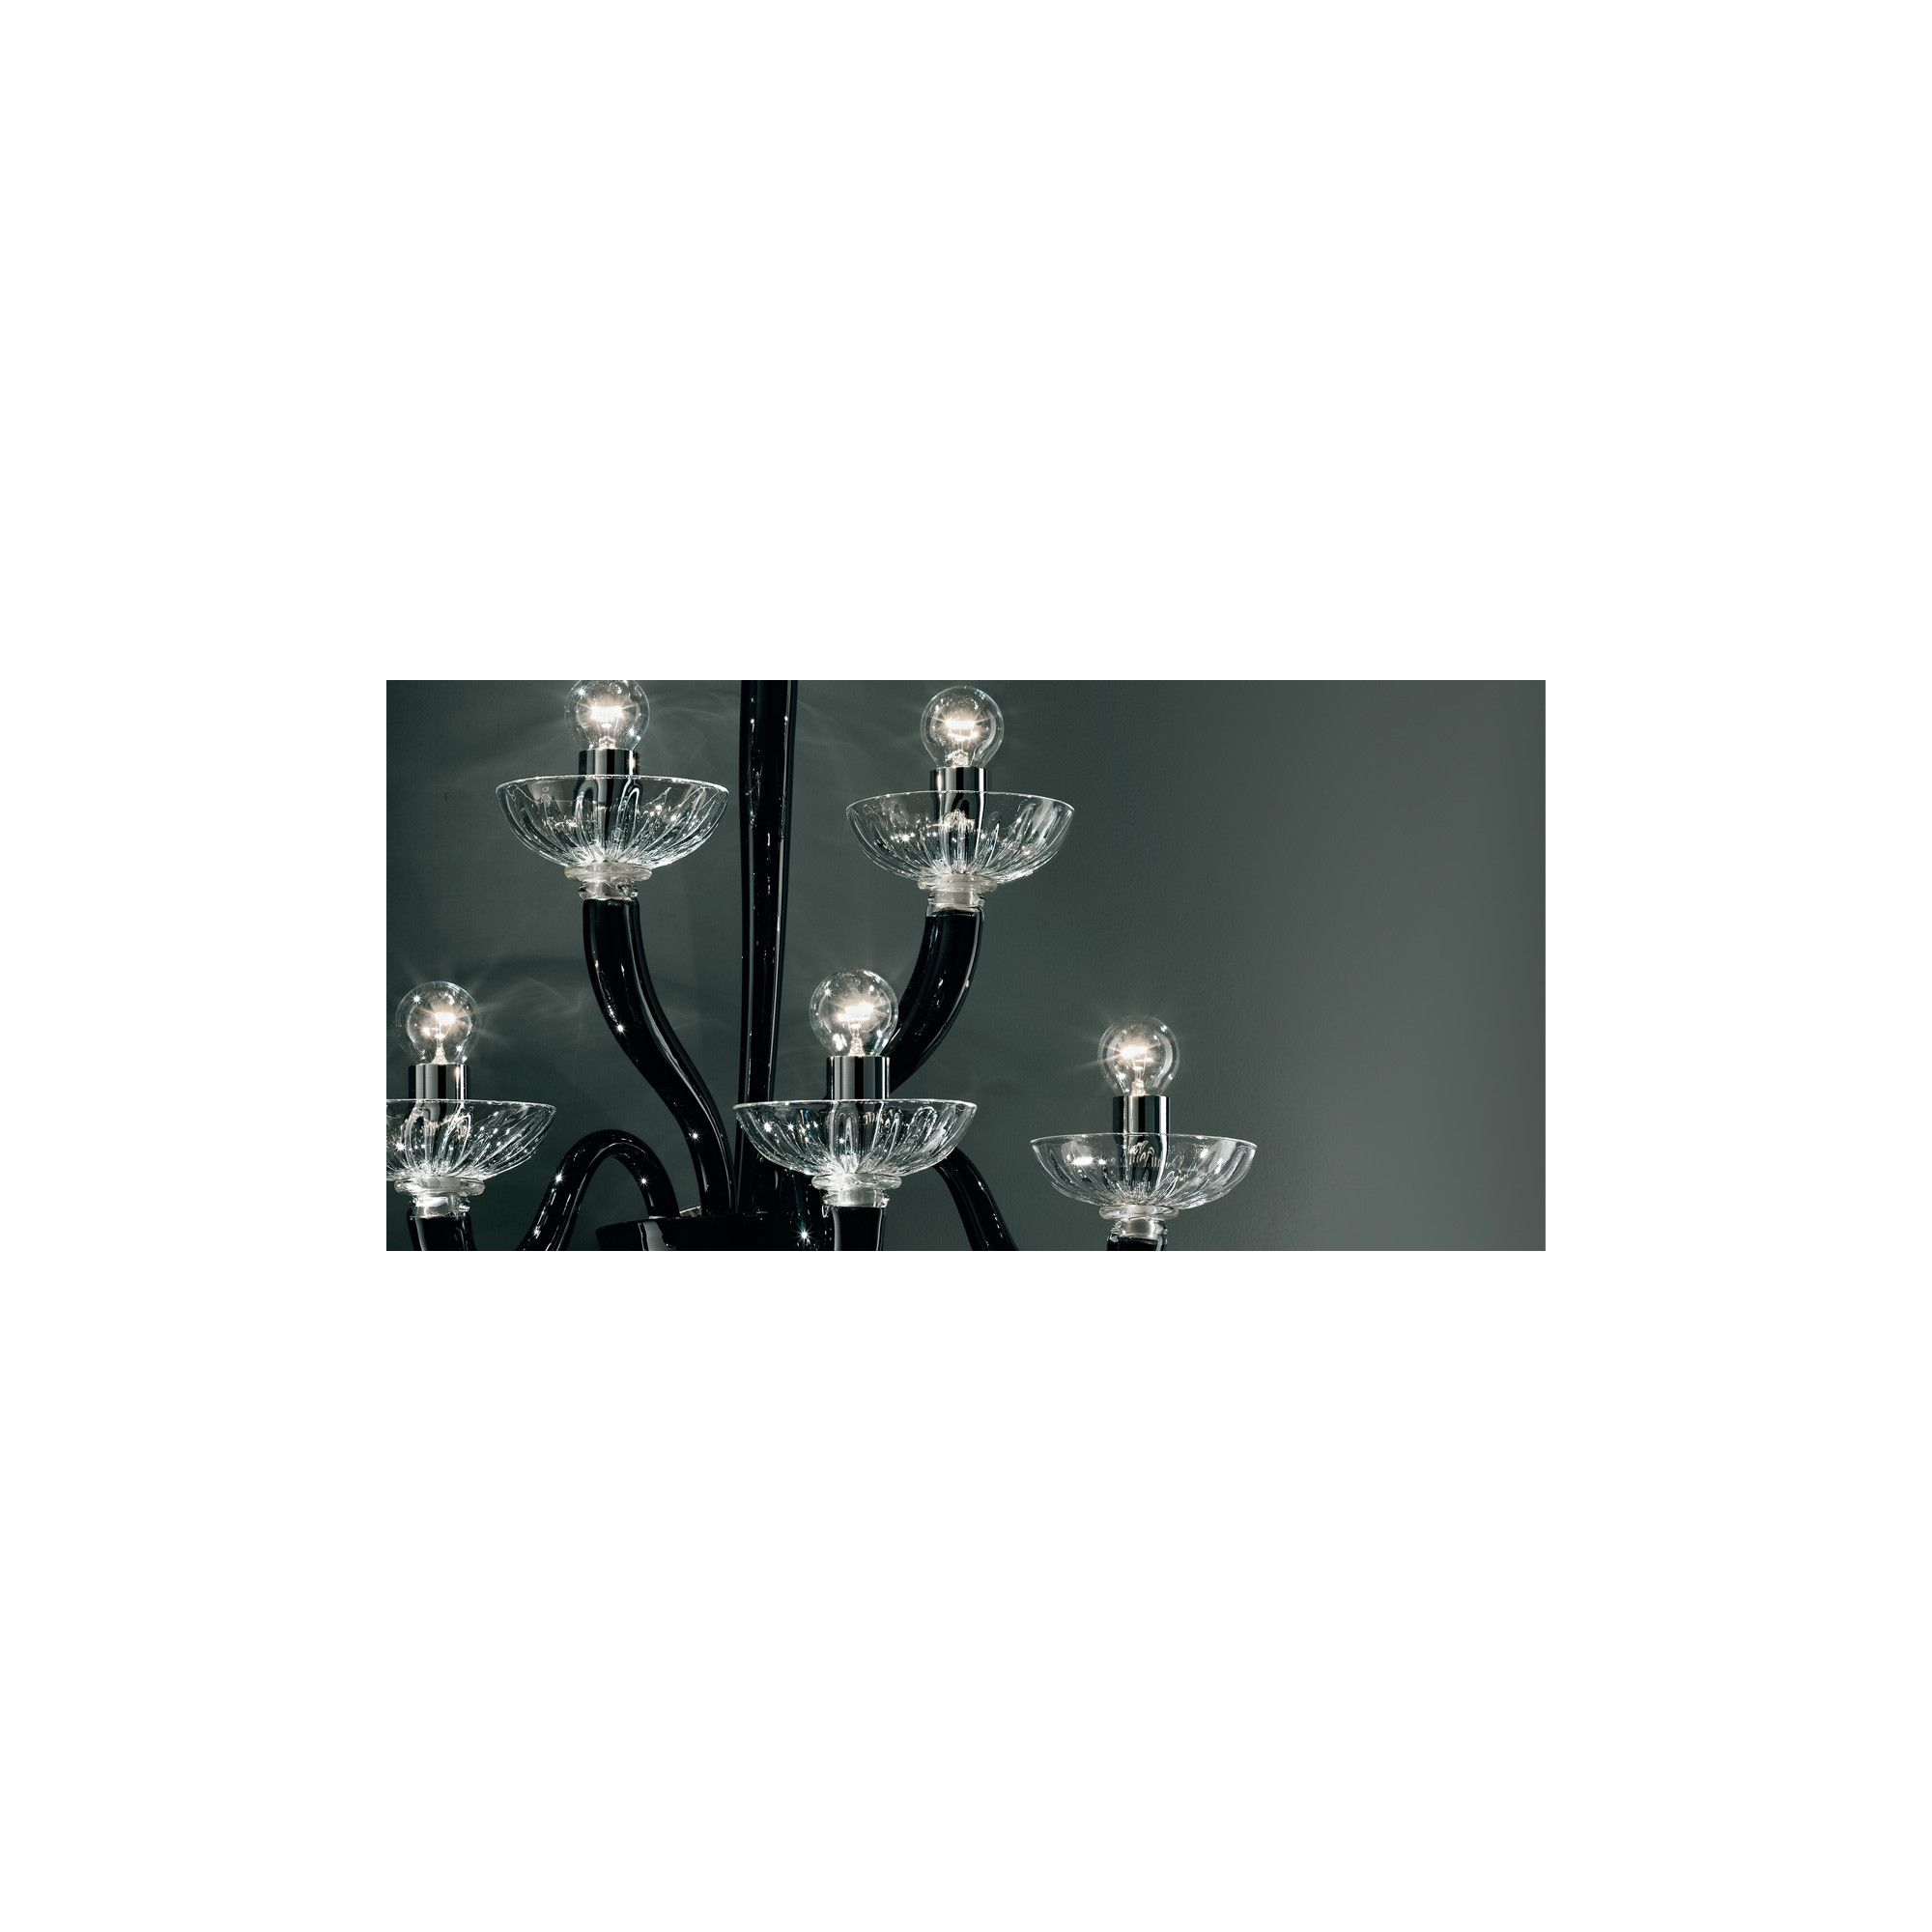 De Majo 8000 Six Light Wall Lamp - Black And Clear Glass